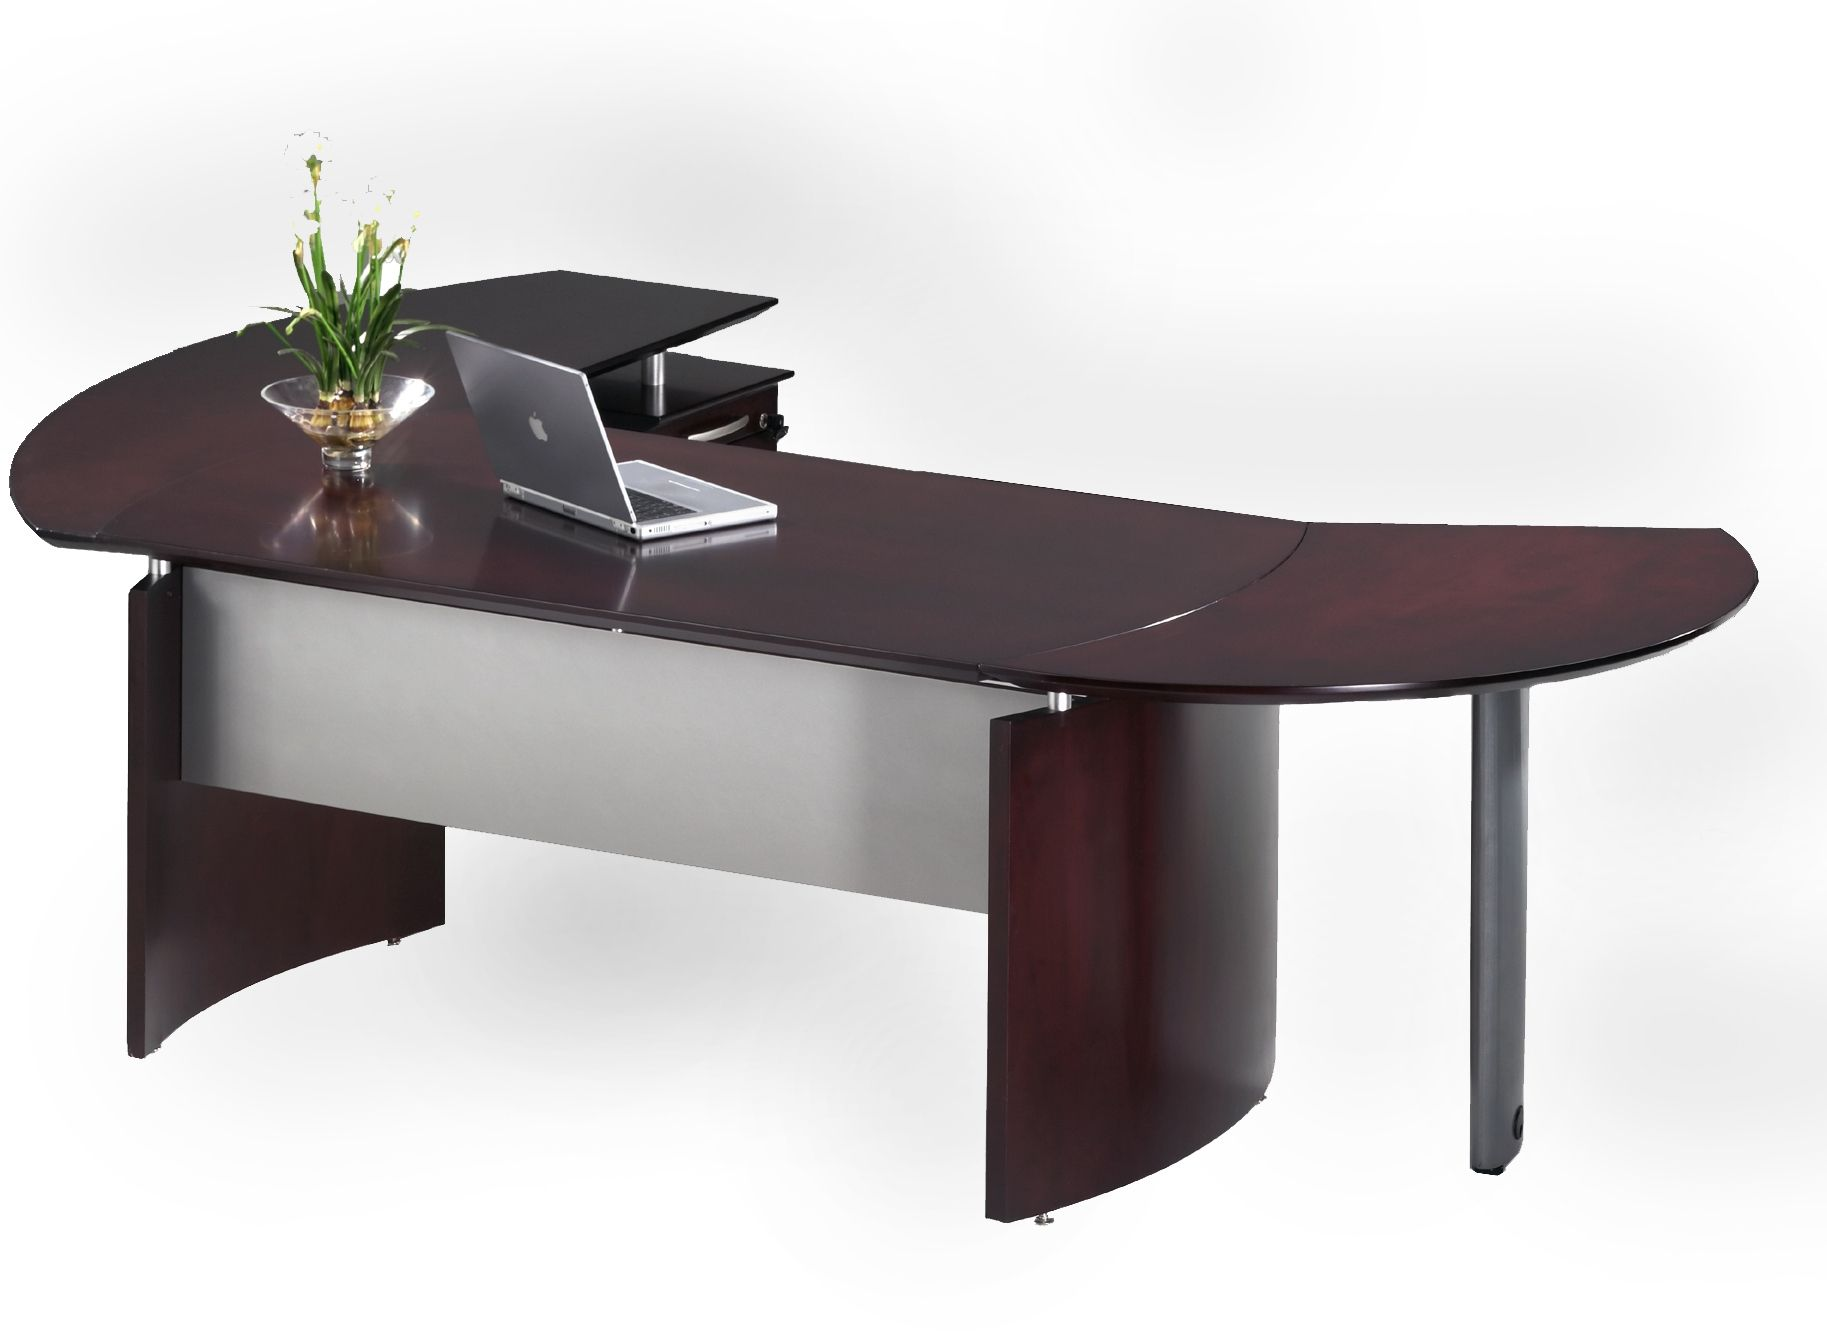 Desk Modern Office Desk Desk Office Office Furniture Curved Desk